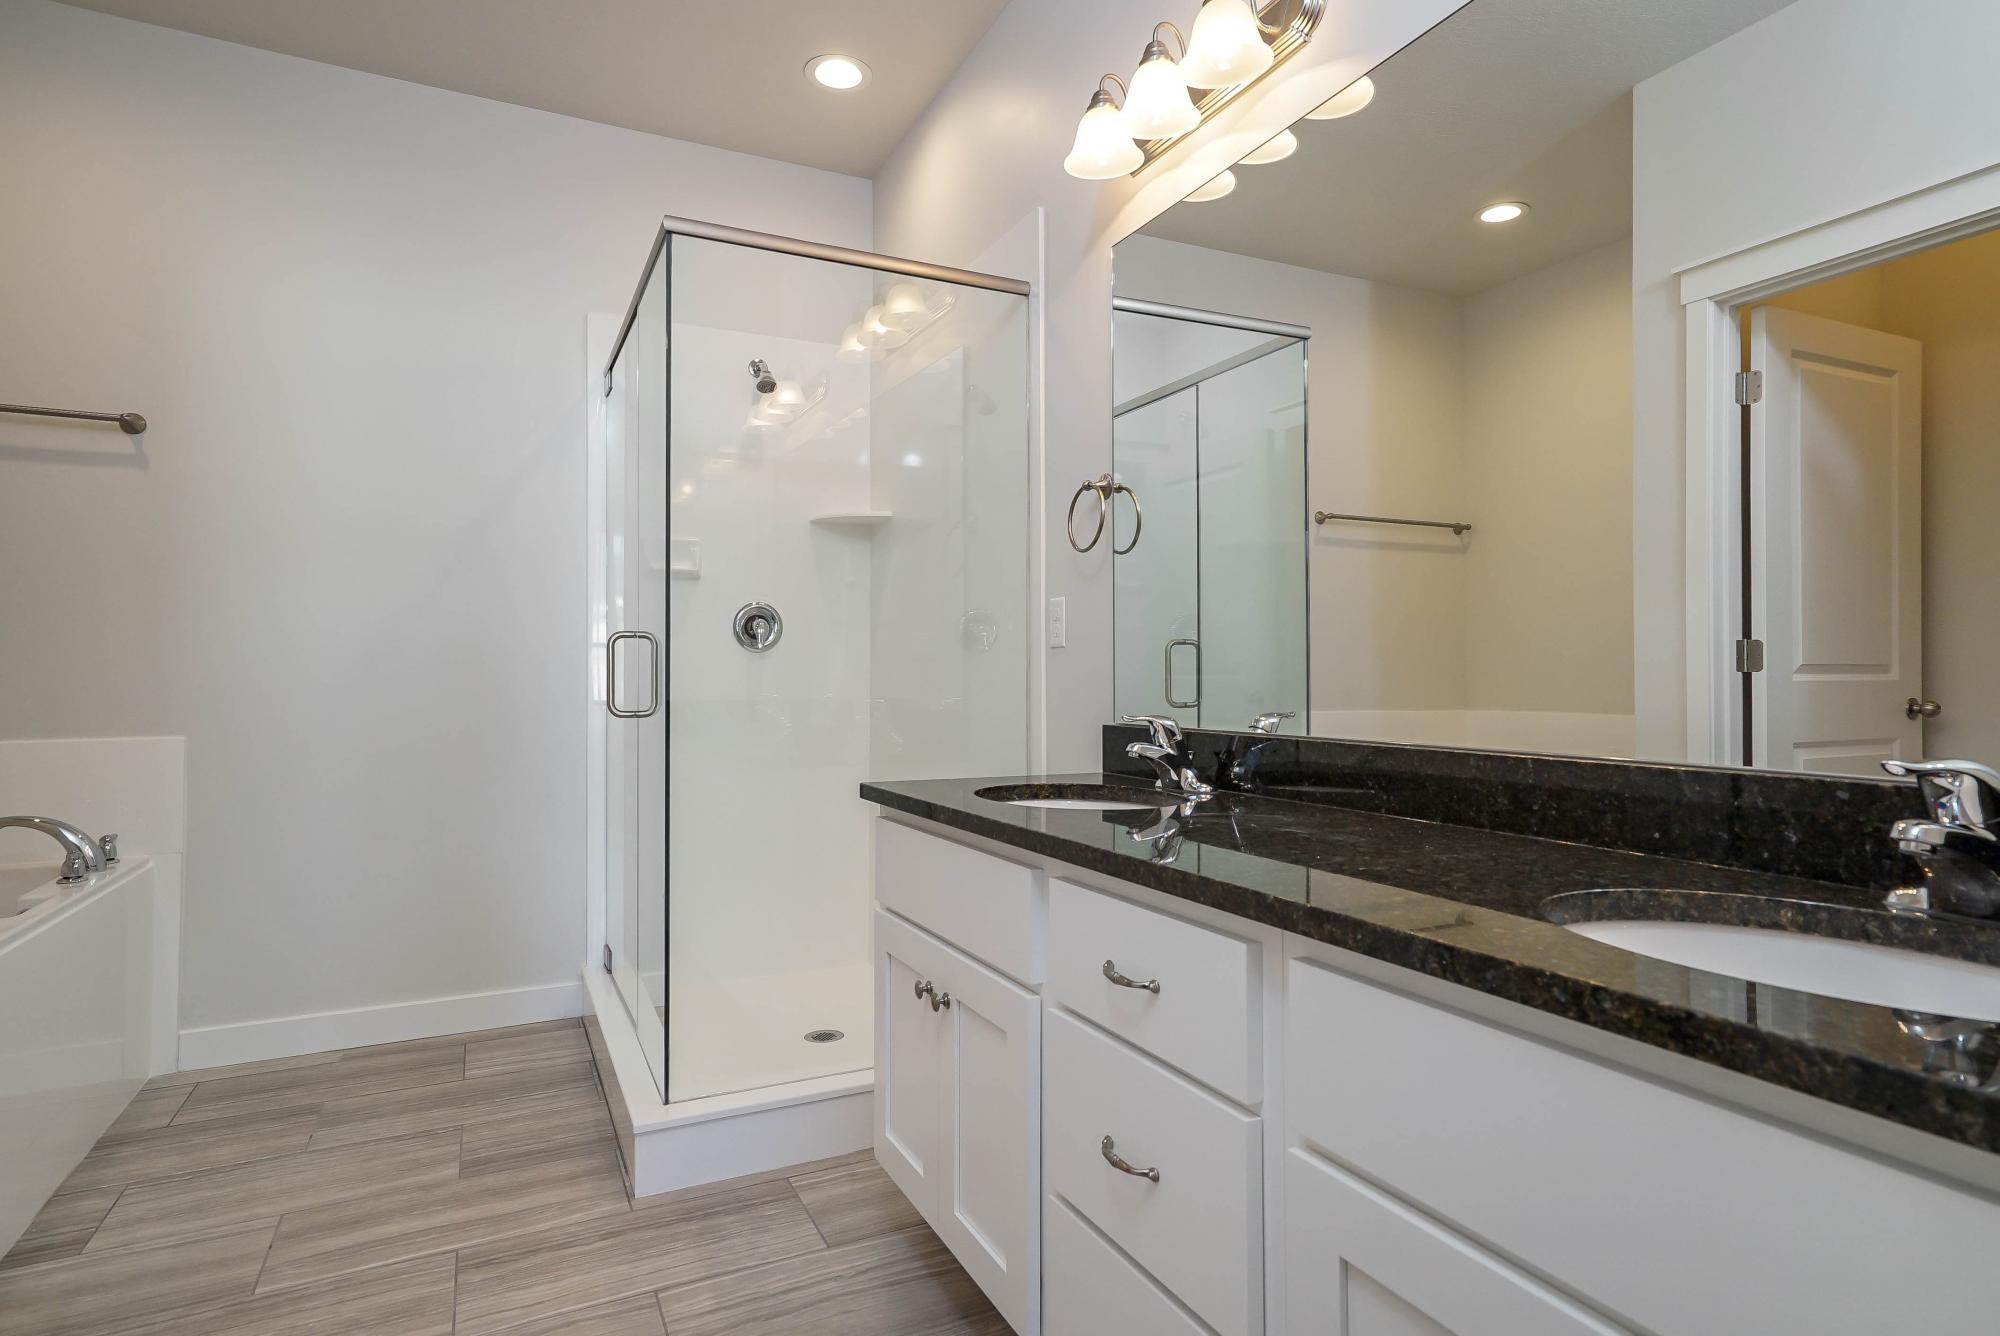 Bathroom featured in the Lakeville By Destination Homes in Salt Lake City-Ogden, UT